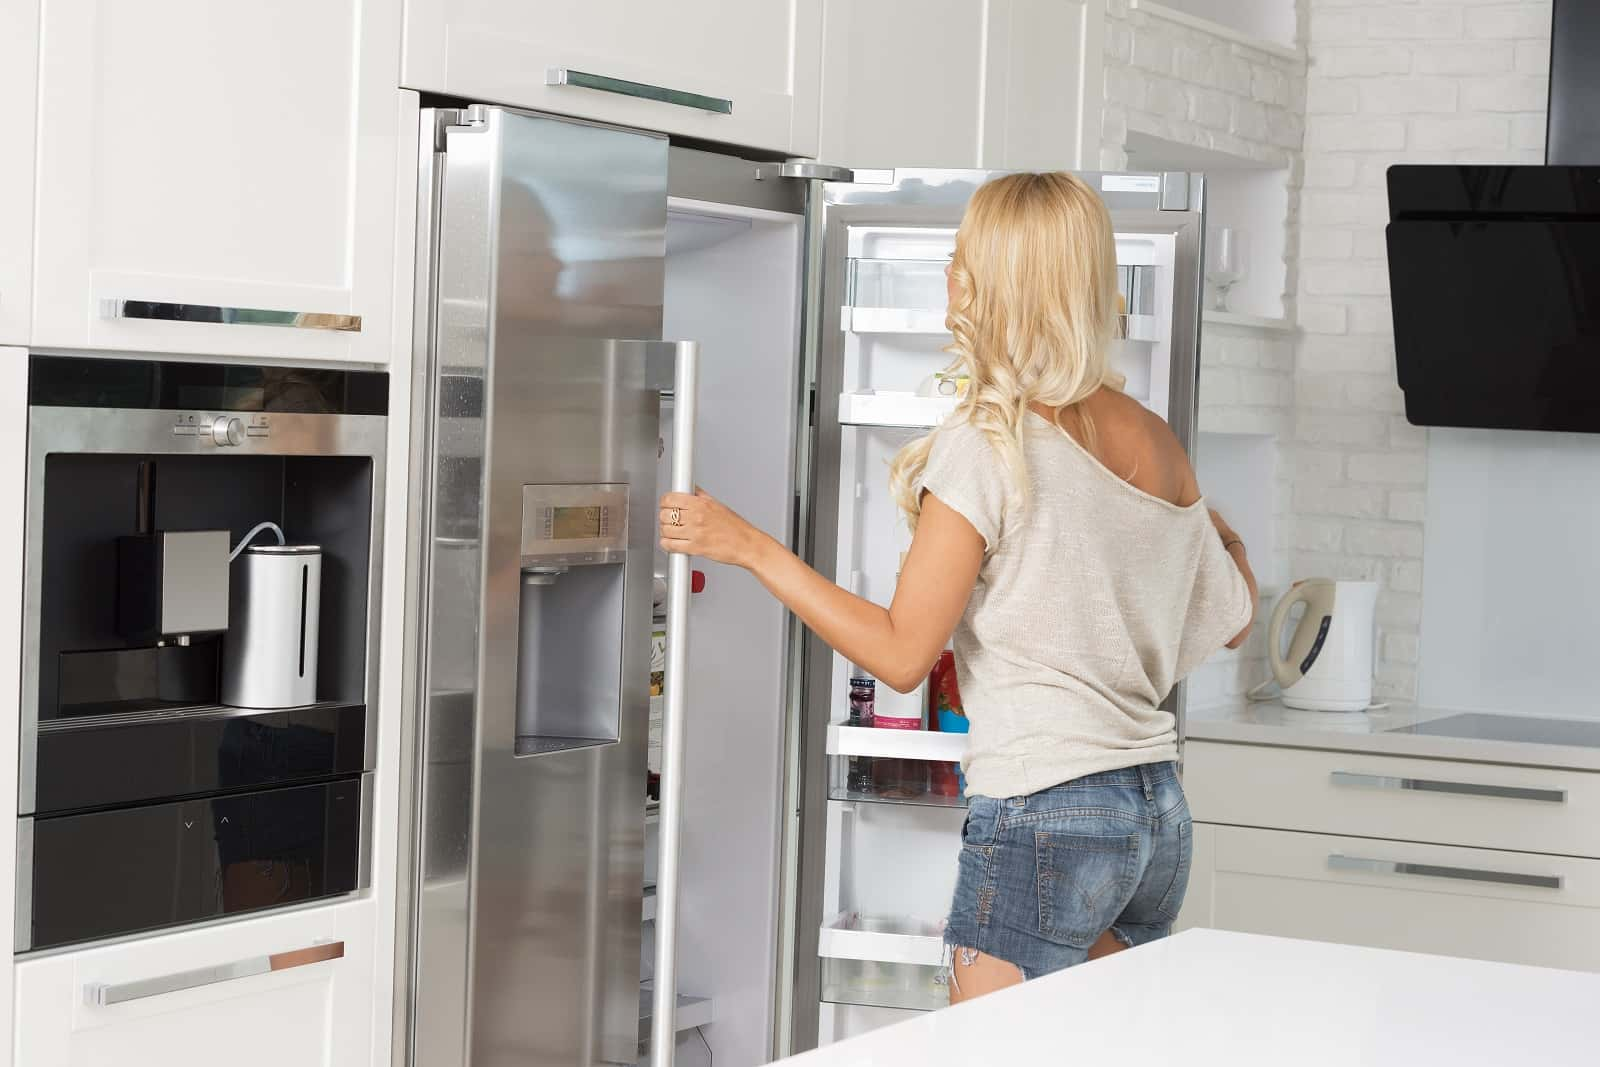 https://devices4home.com/wp-content/uploads/2019/03/refrigerator-min.jpg